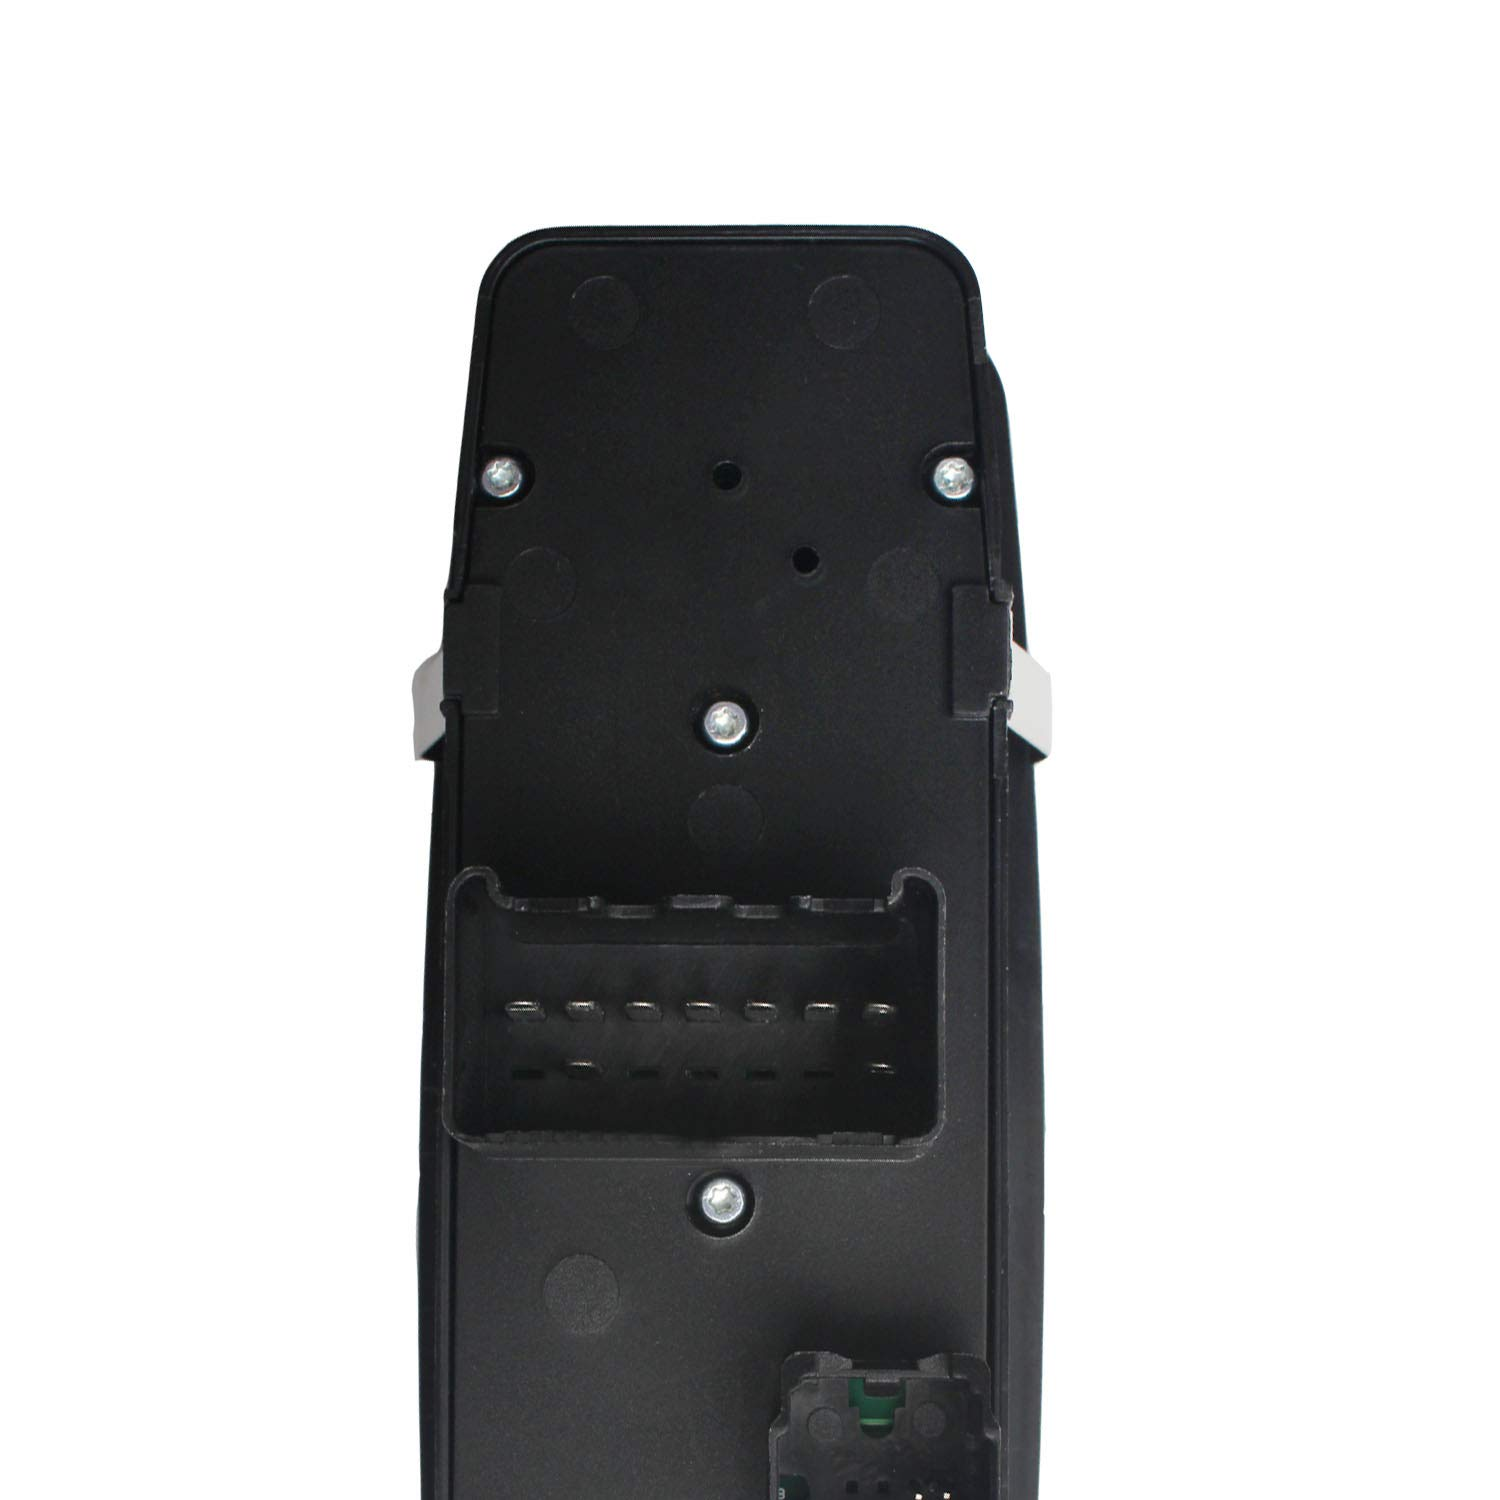 Beneges Master Power Window Switch Compatible with 2012-2015 Chrysler Town /& Country 68110866AA 2012-2017 Dodge Grand Caravan 2013-2015 Dodge Ram 1500 2500 3500 4500 5500 68110866AB